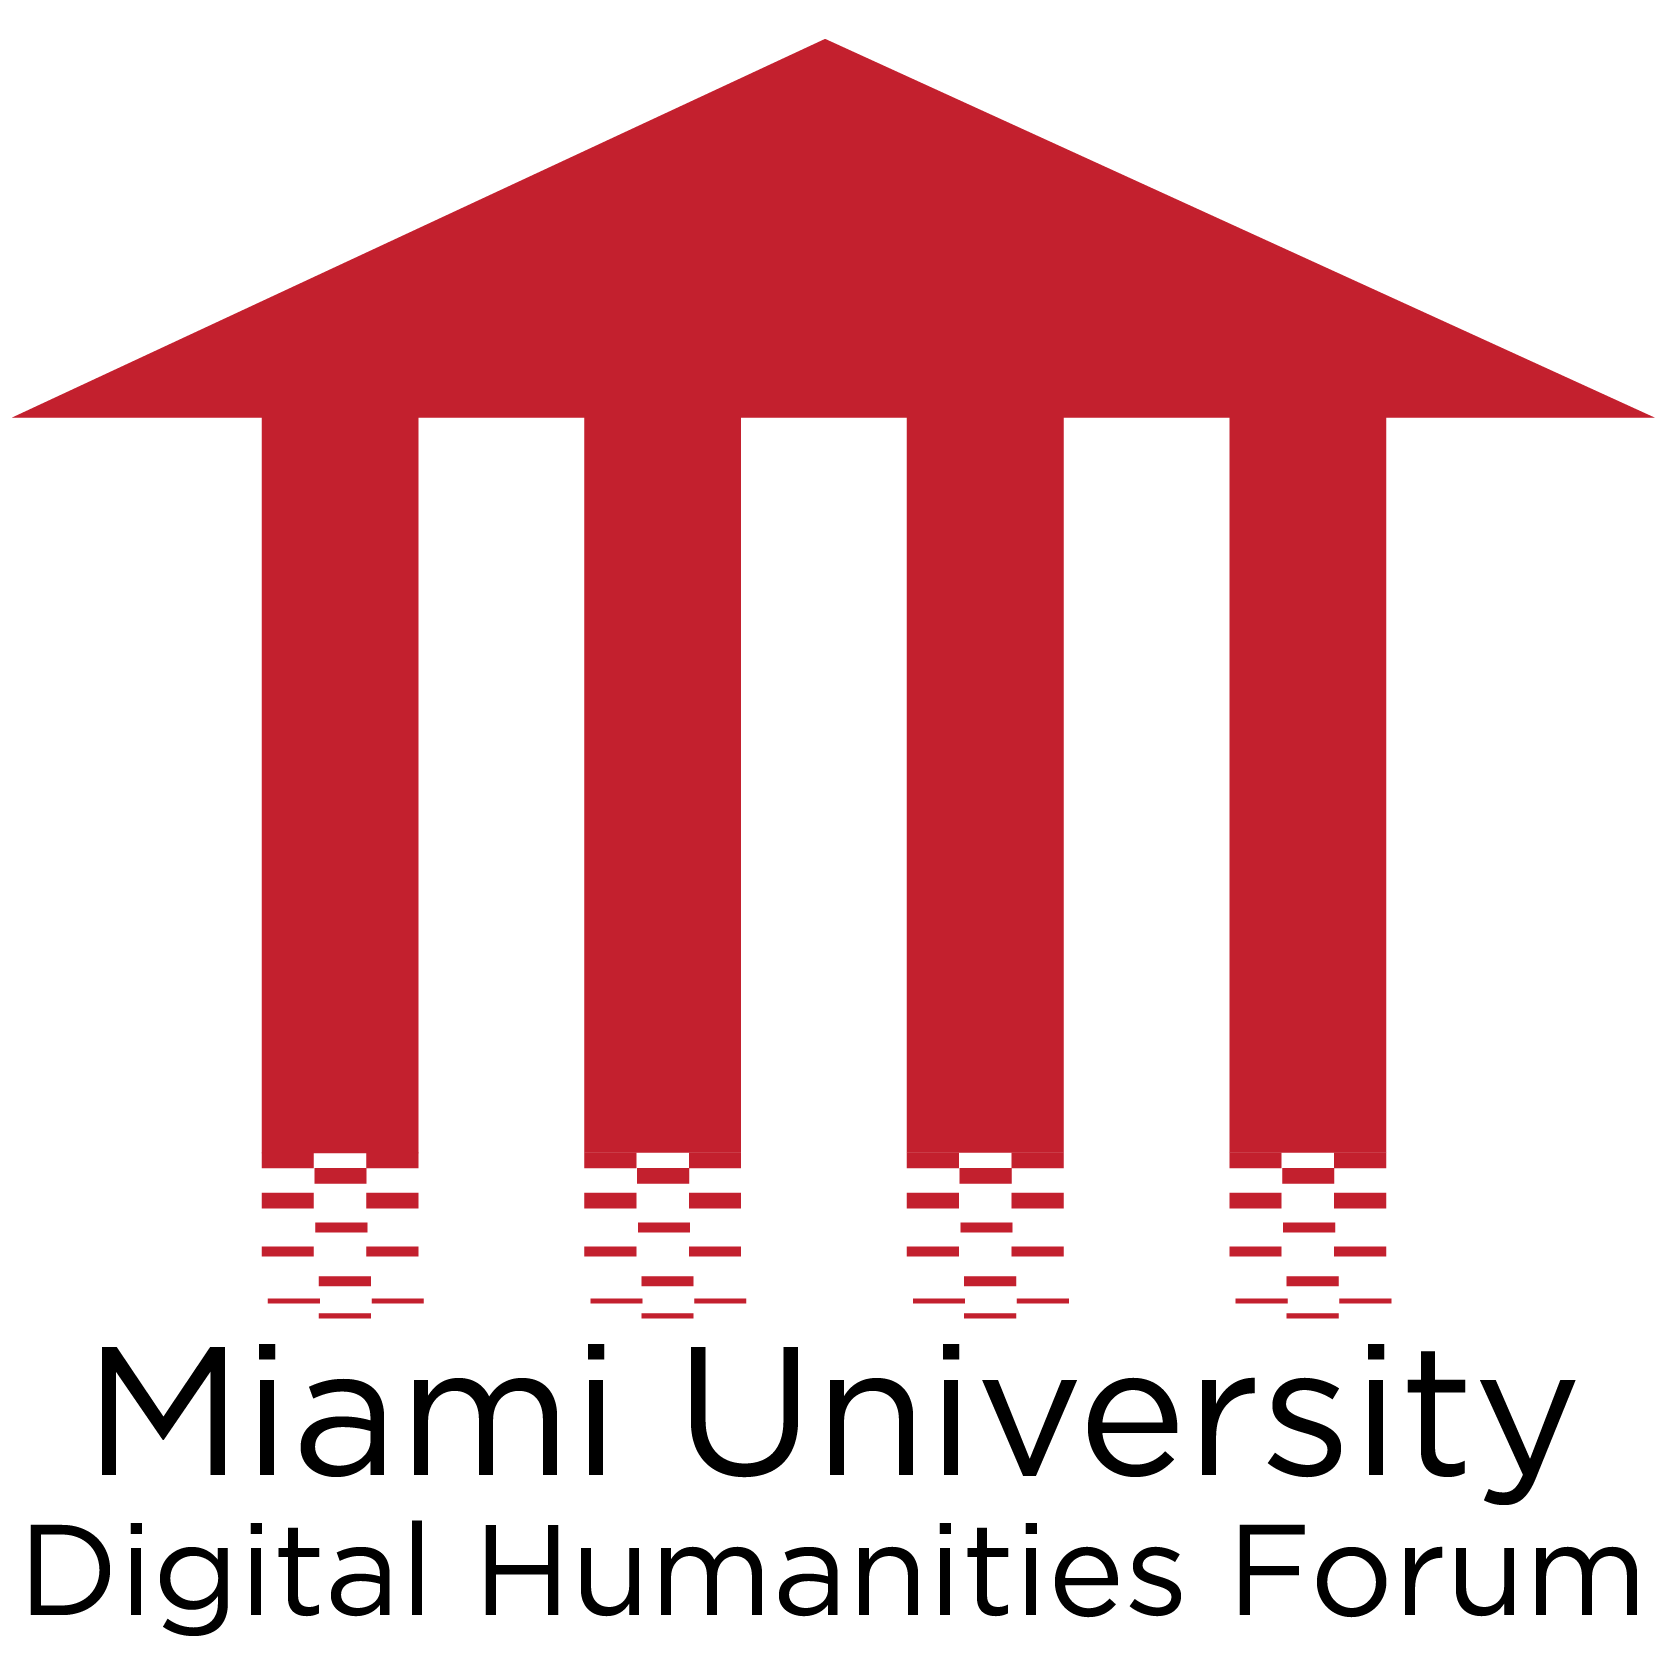 DH Forum logo, red